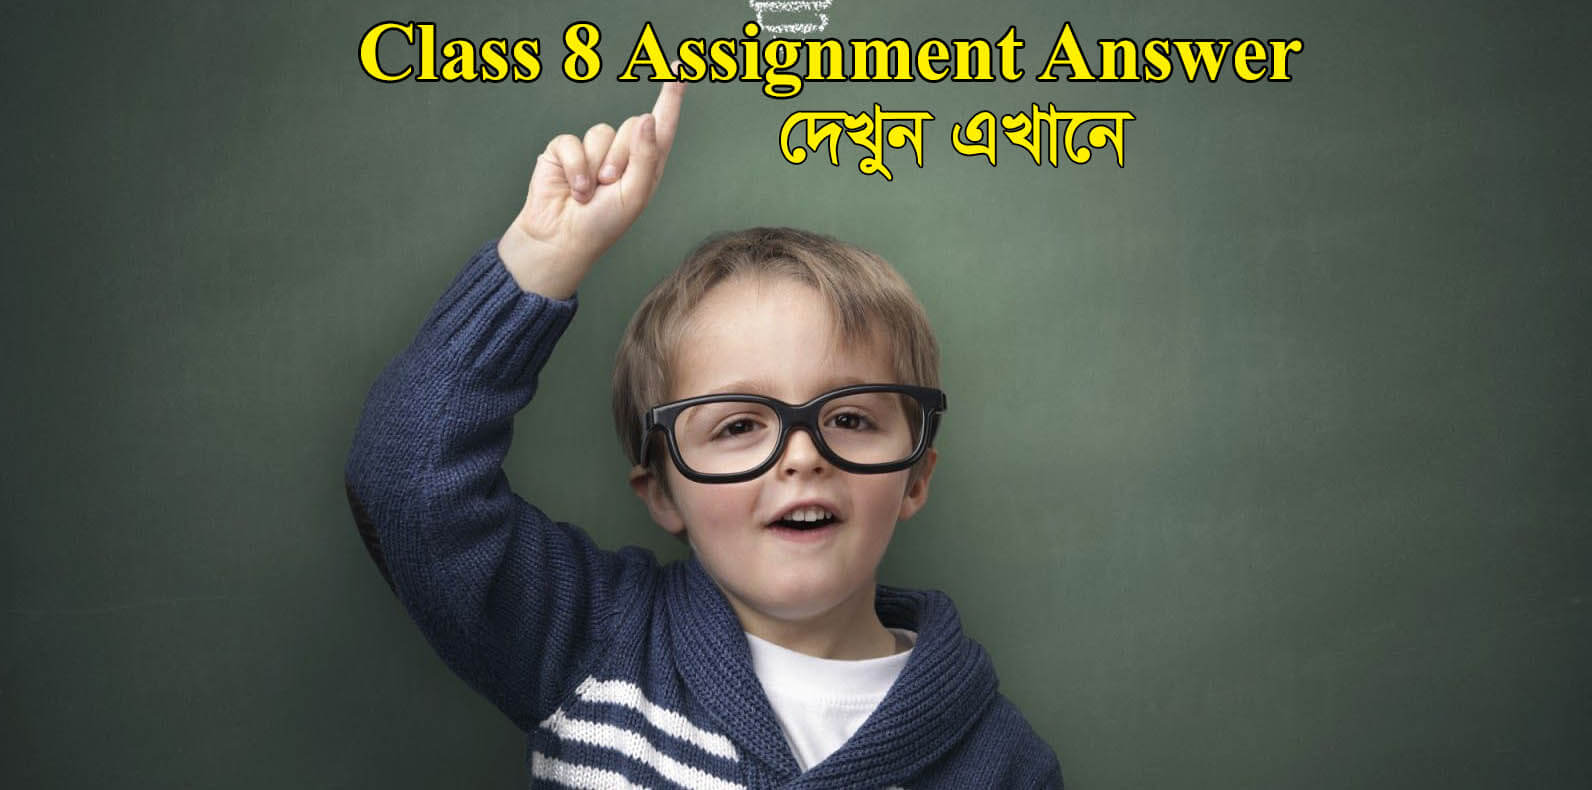 Class 8 Assignment Answer 2021